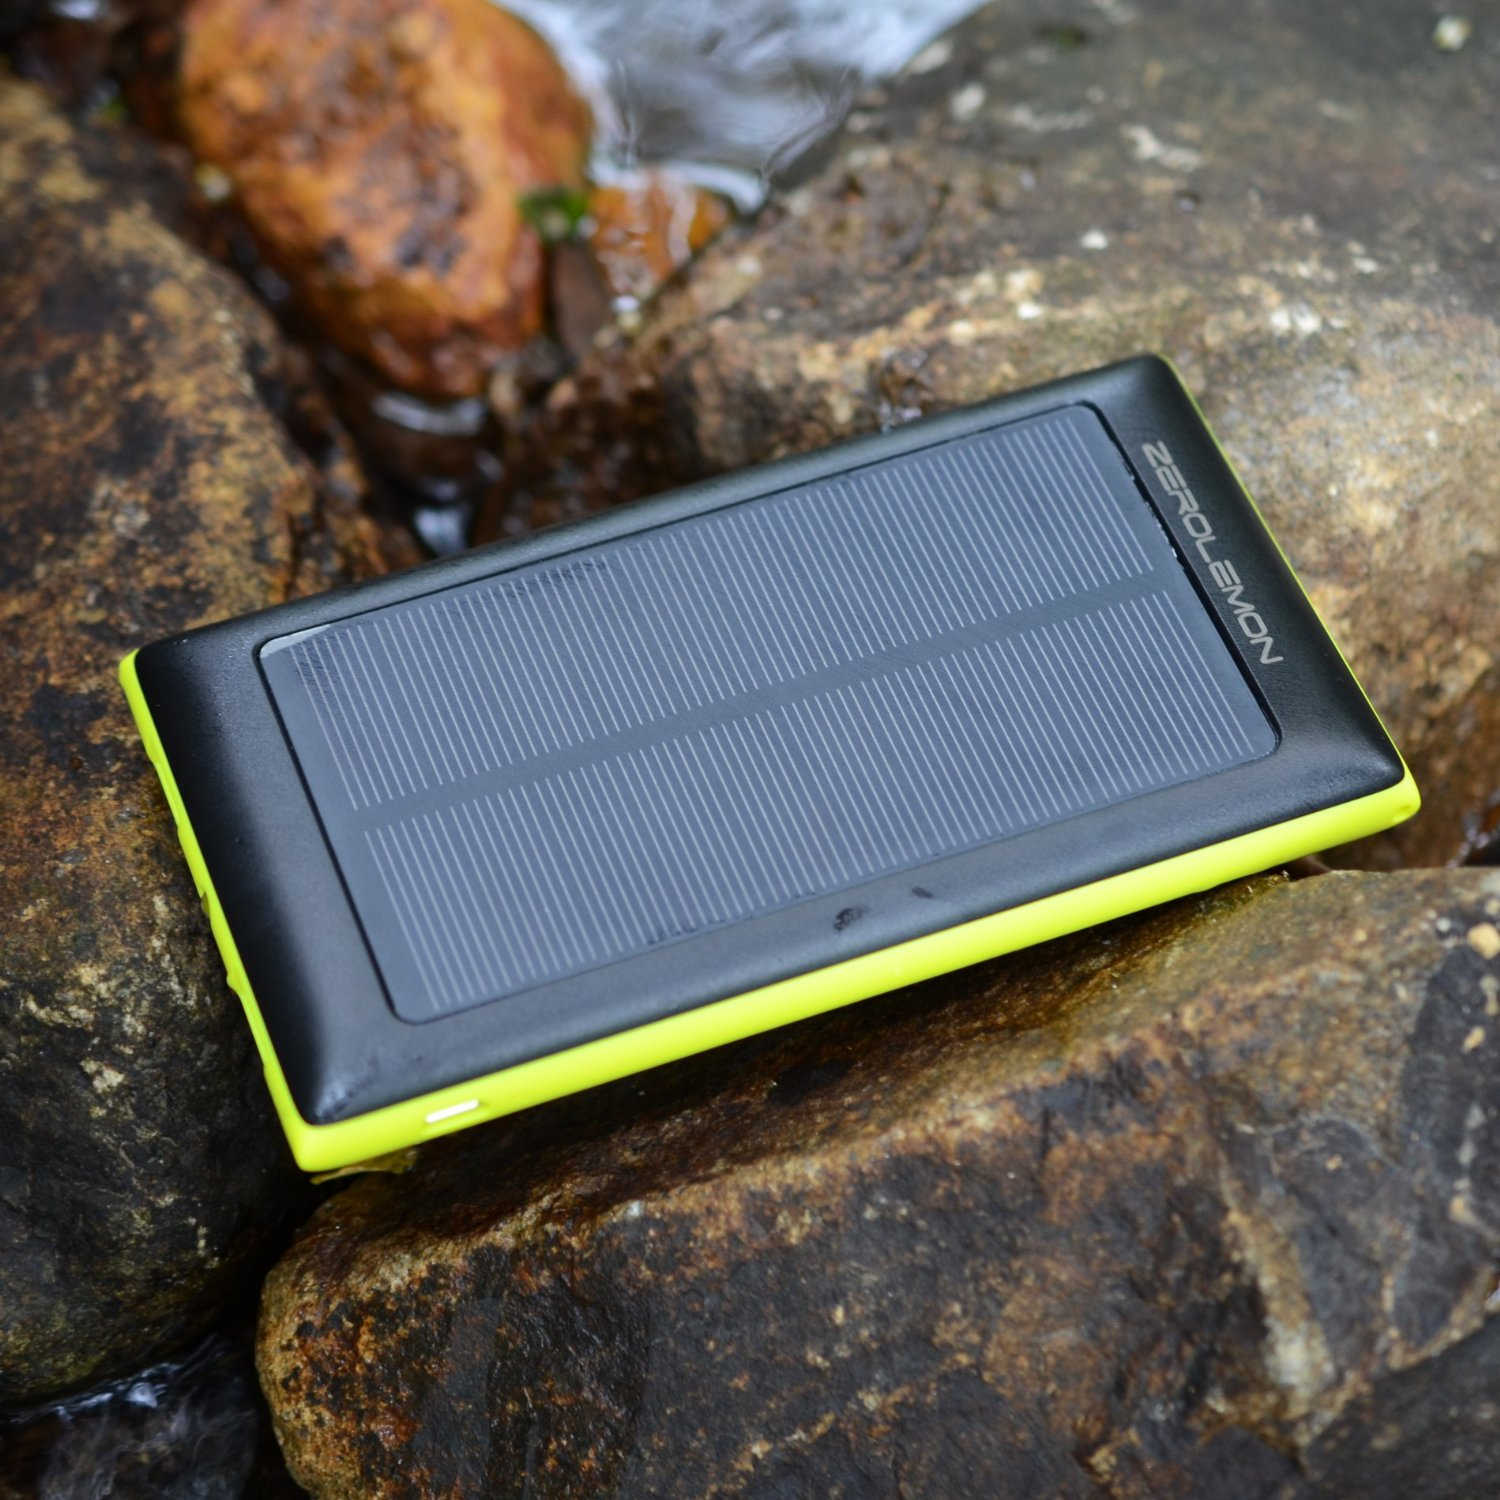 ZeroLemon SolarJuice Solar Charger 10000mAh External Battery Portable Dual USB Charger Power Bank